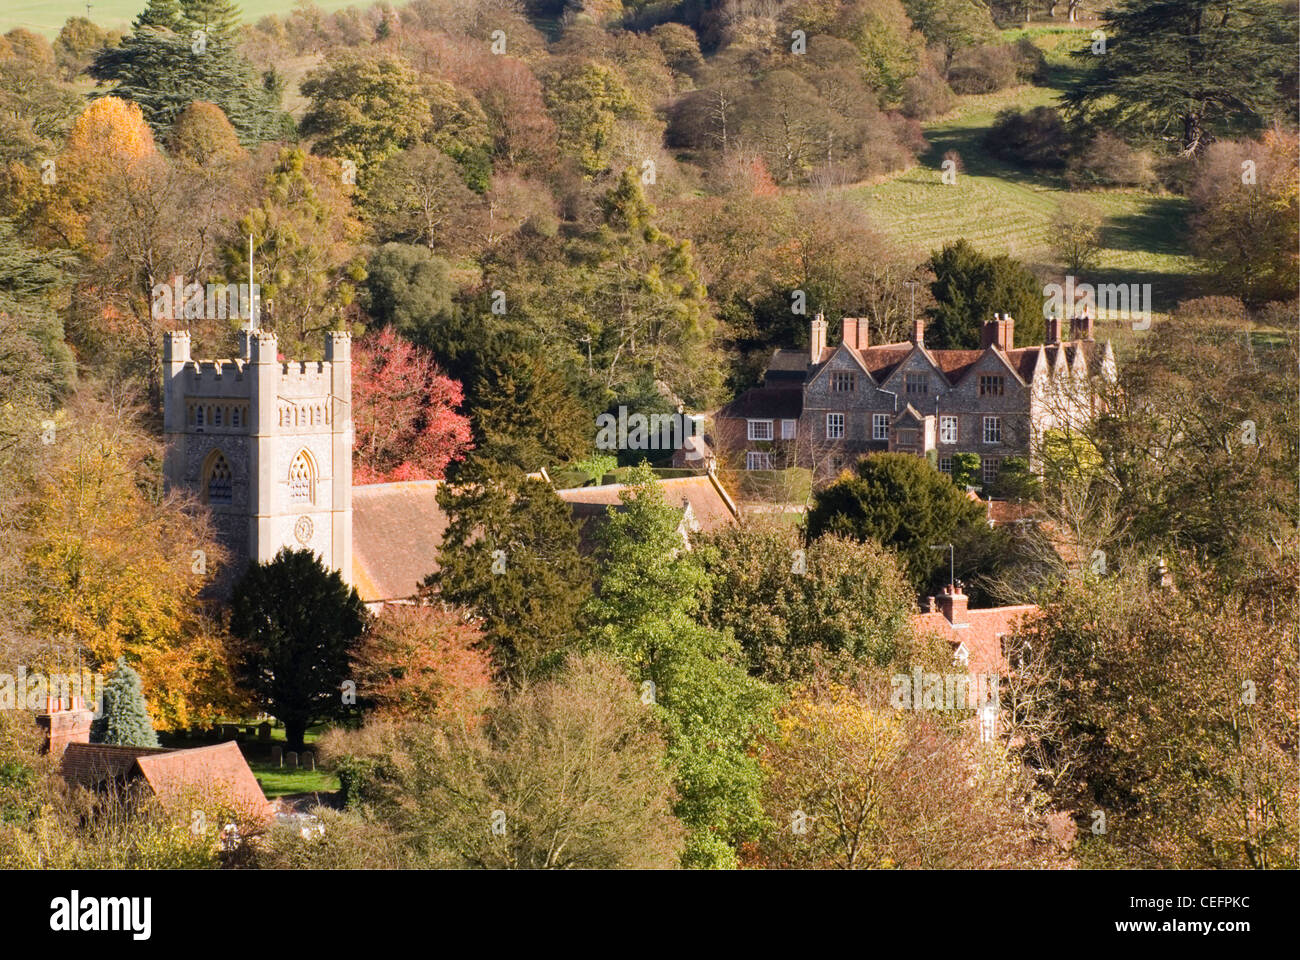 Chiltern Hills - Bucks -  Hambleden village - seen from hillside above - surrounded by trees - autumn colours - Stock Image